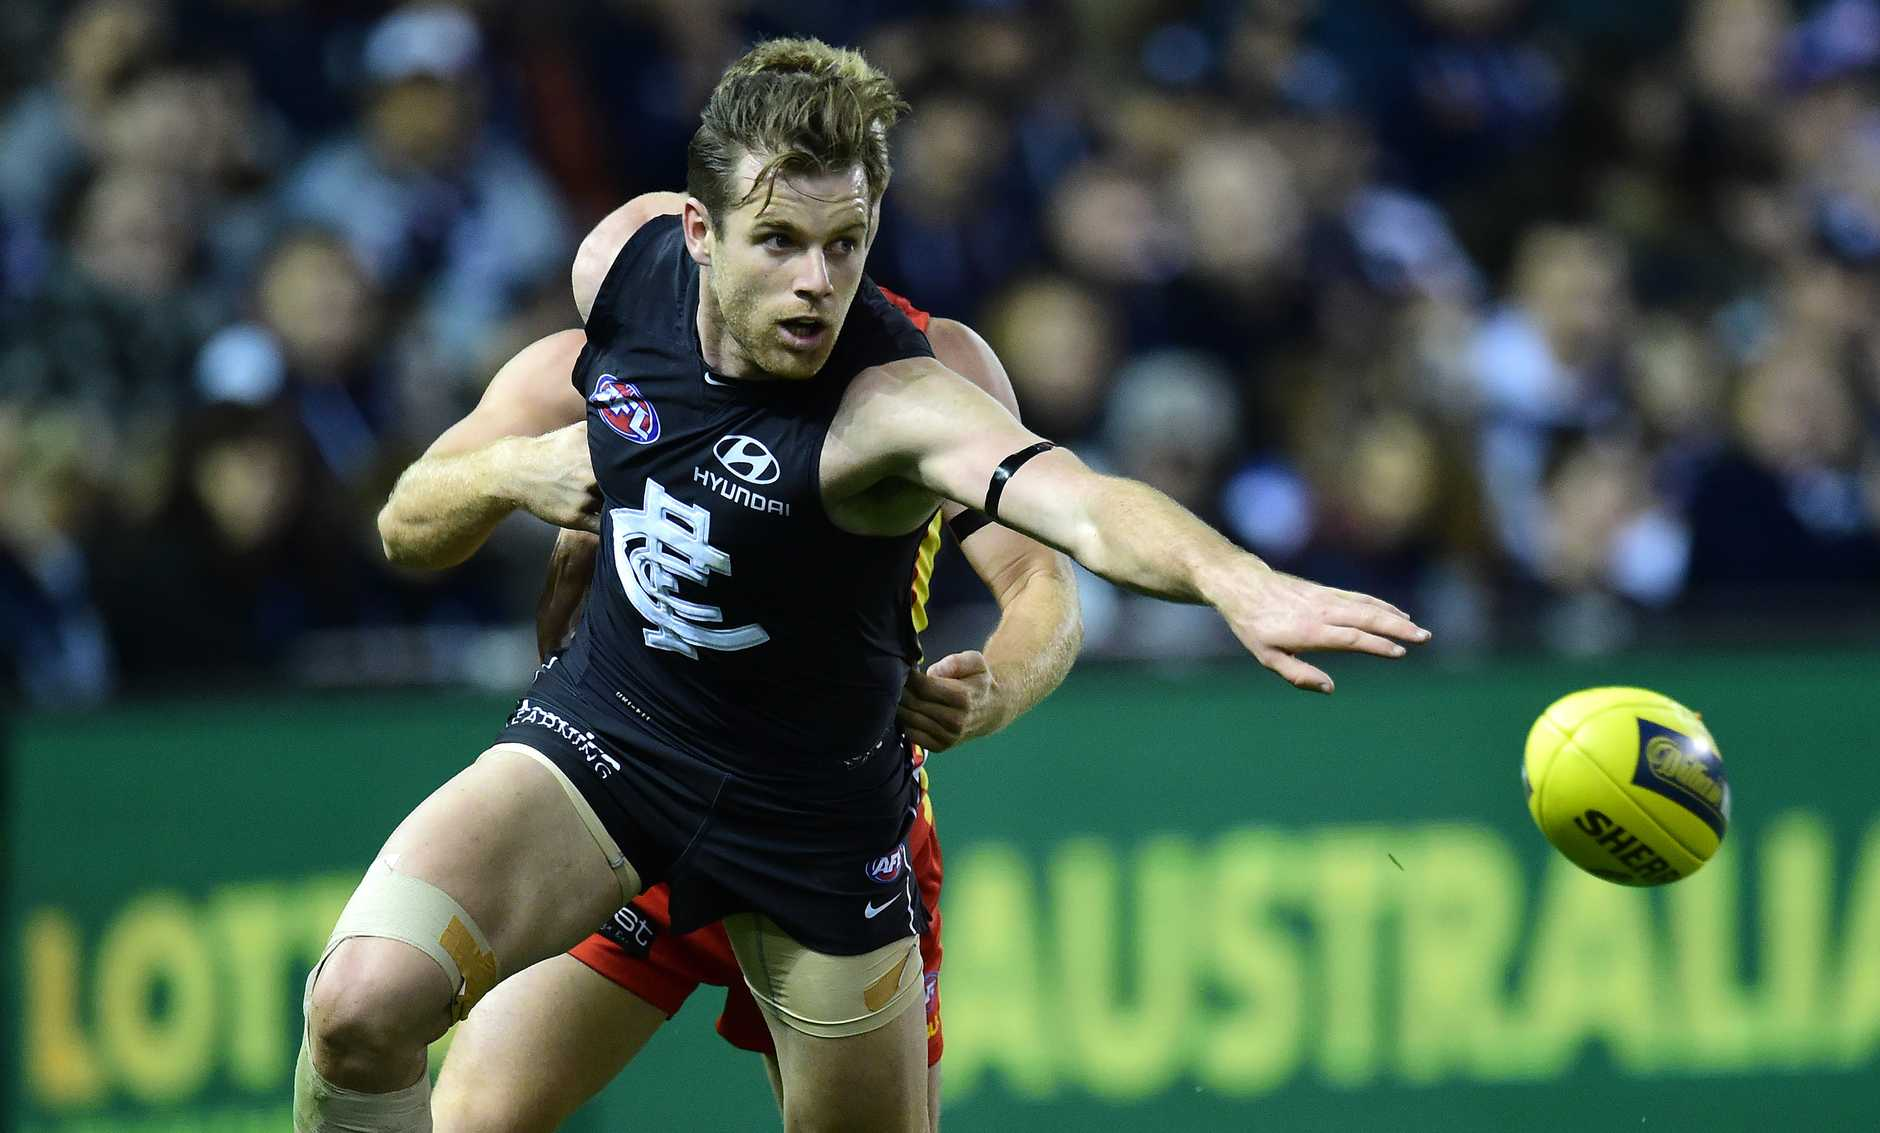 Sam Docherty is in his second season with Carlton after crossing from the Brisbane Lions.